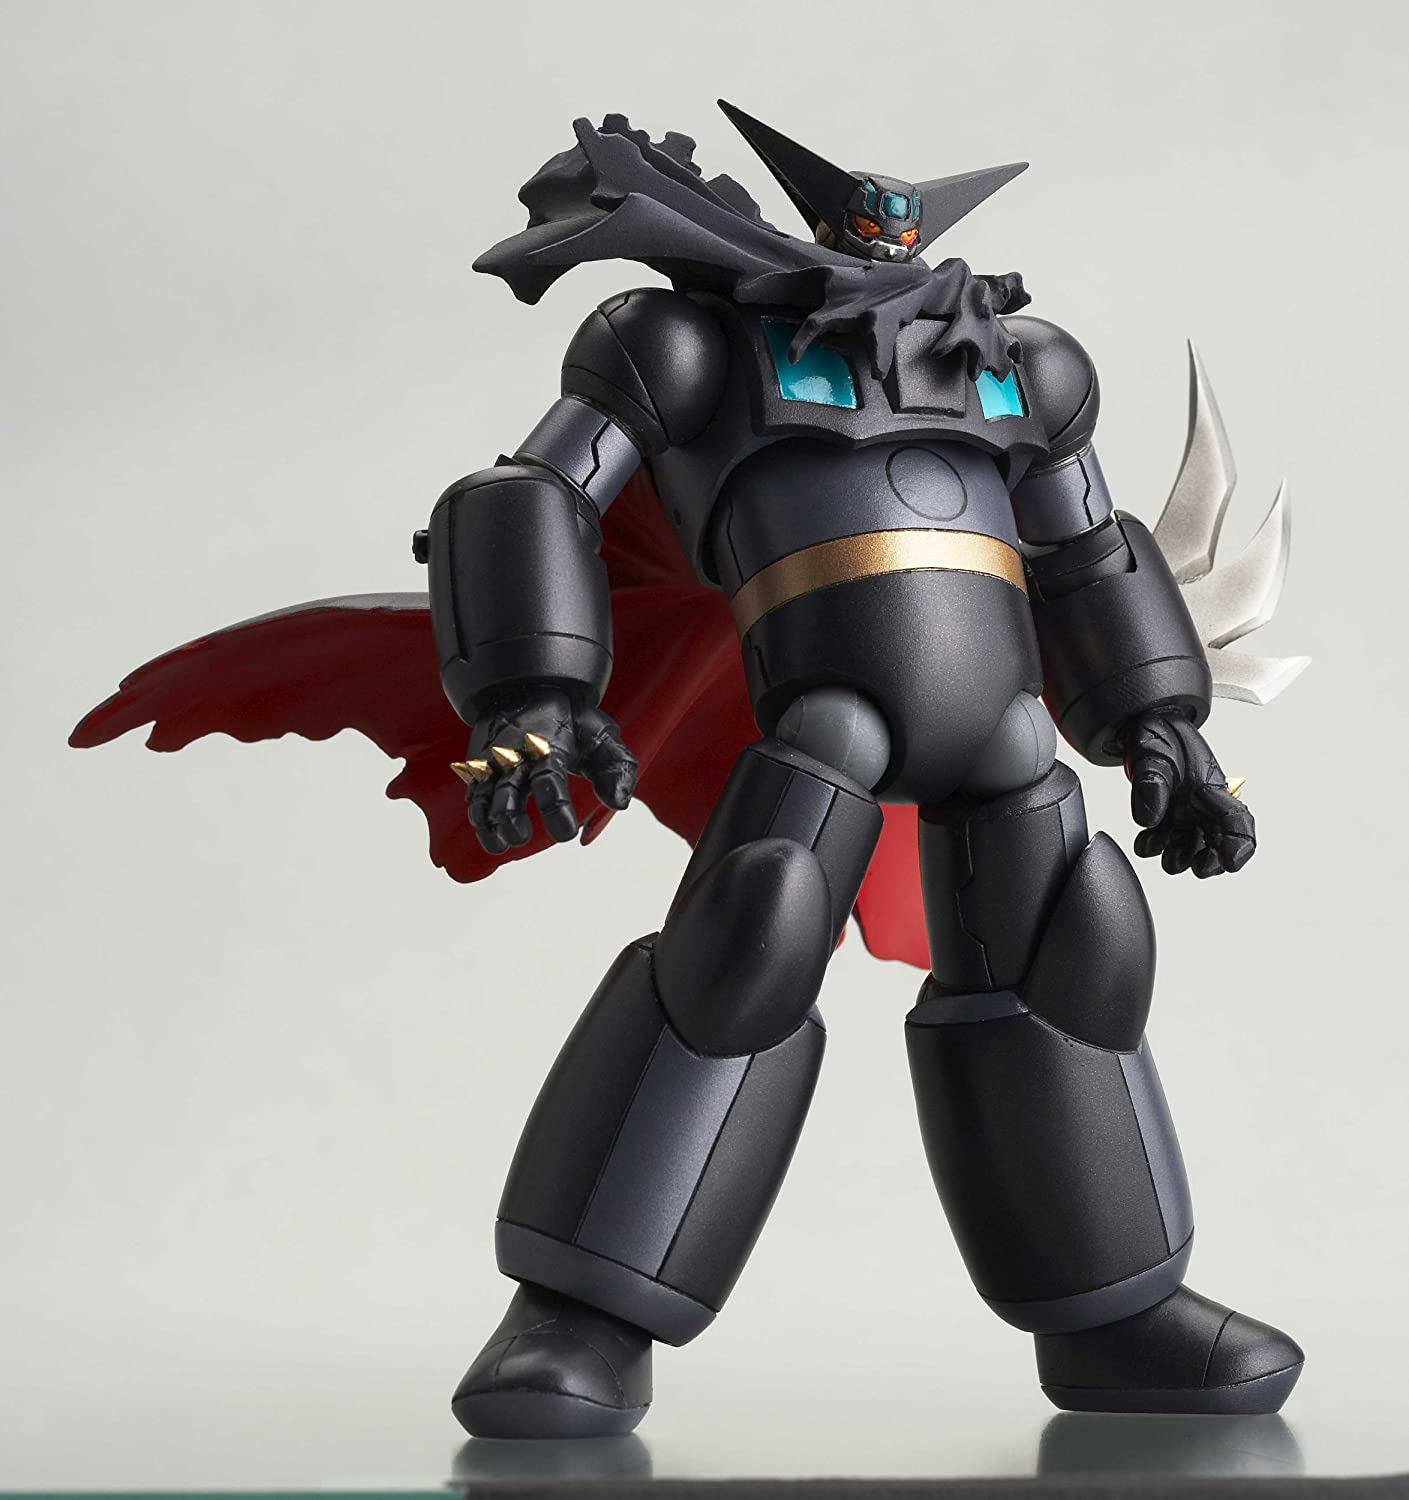 Shin Getter Kaiyodo Revoltech Super Poseable Action Figure schwarz Getter [OVA Version]